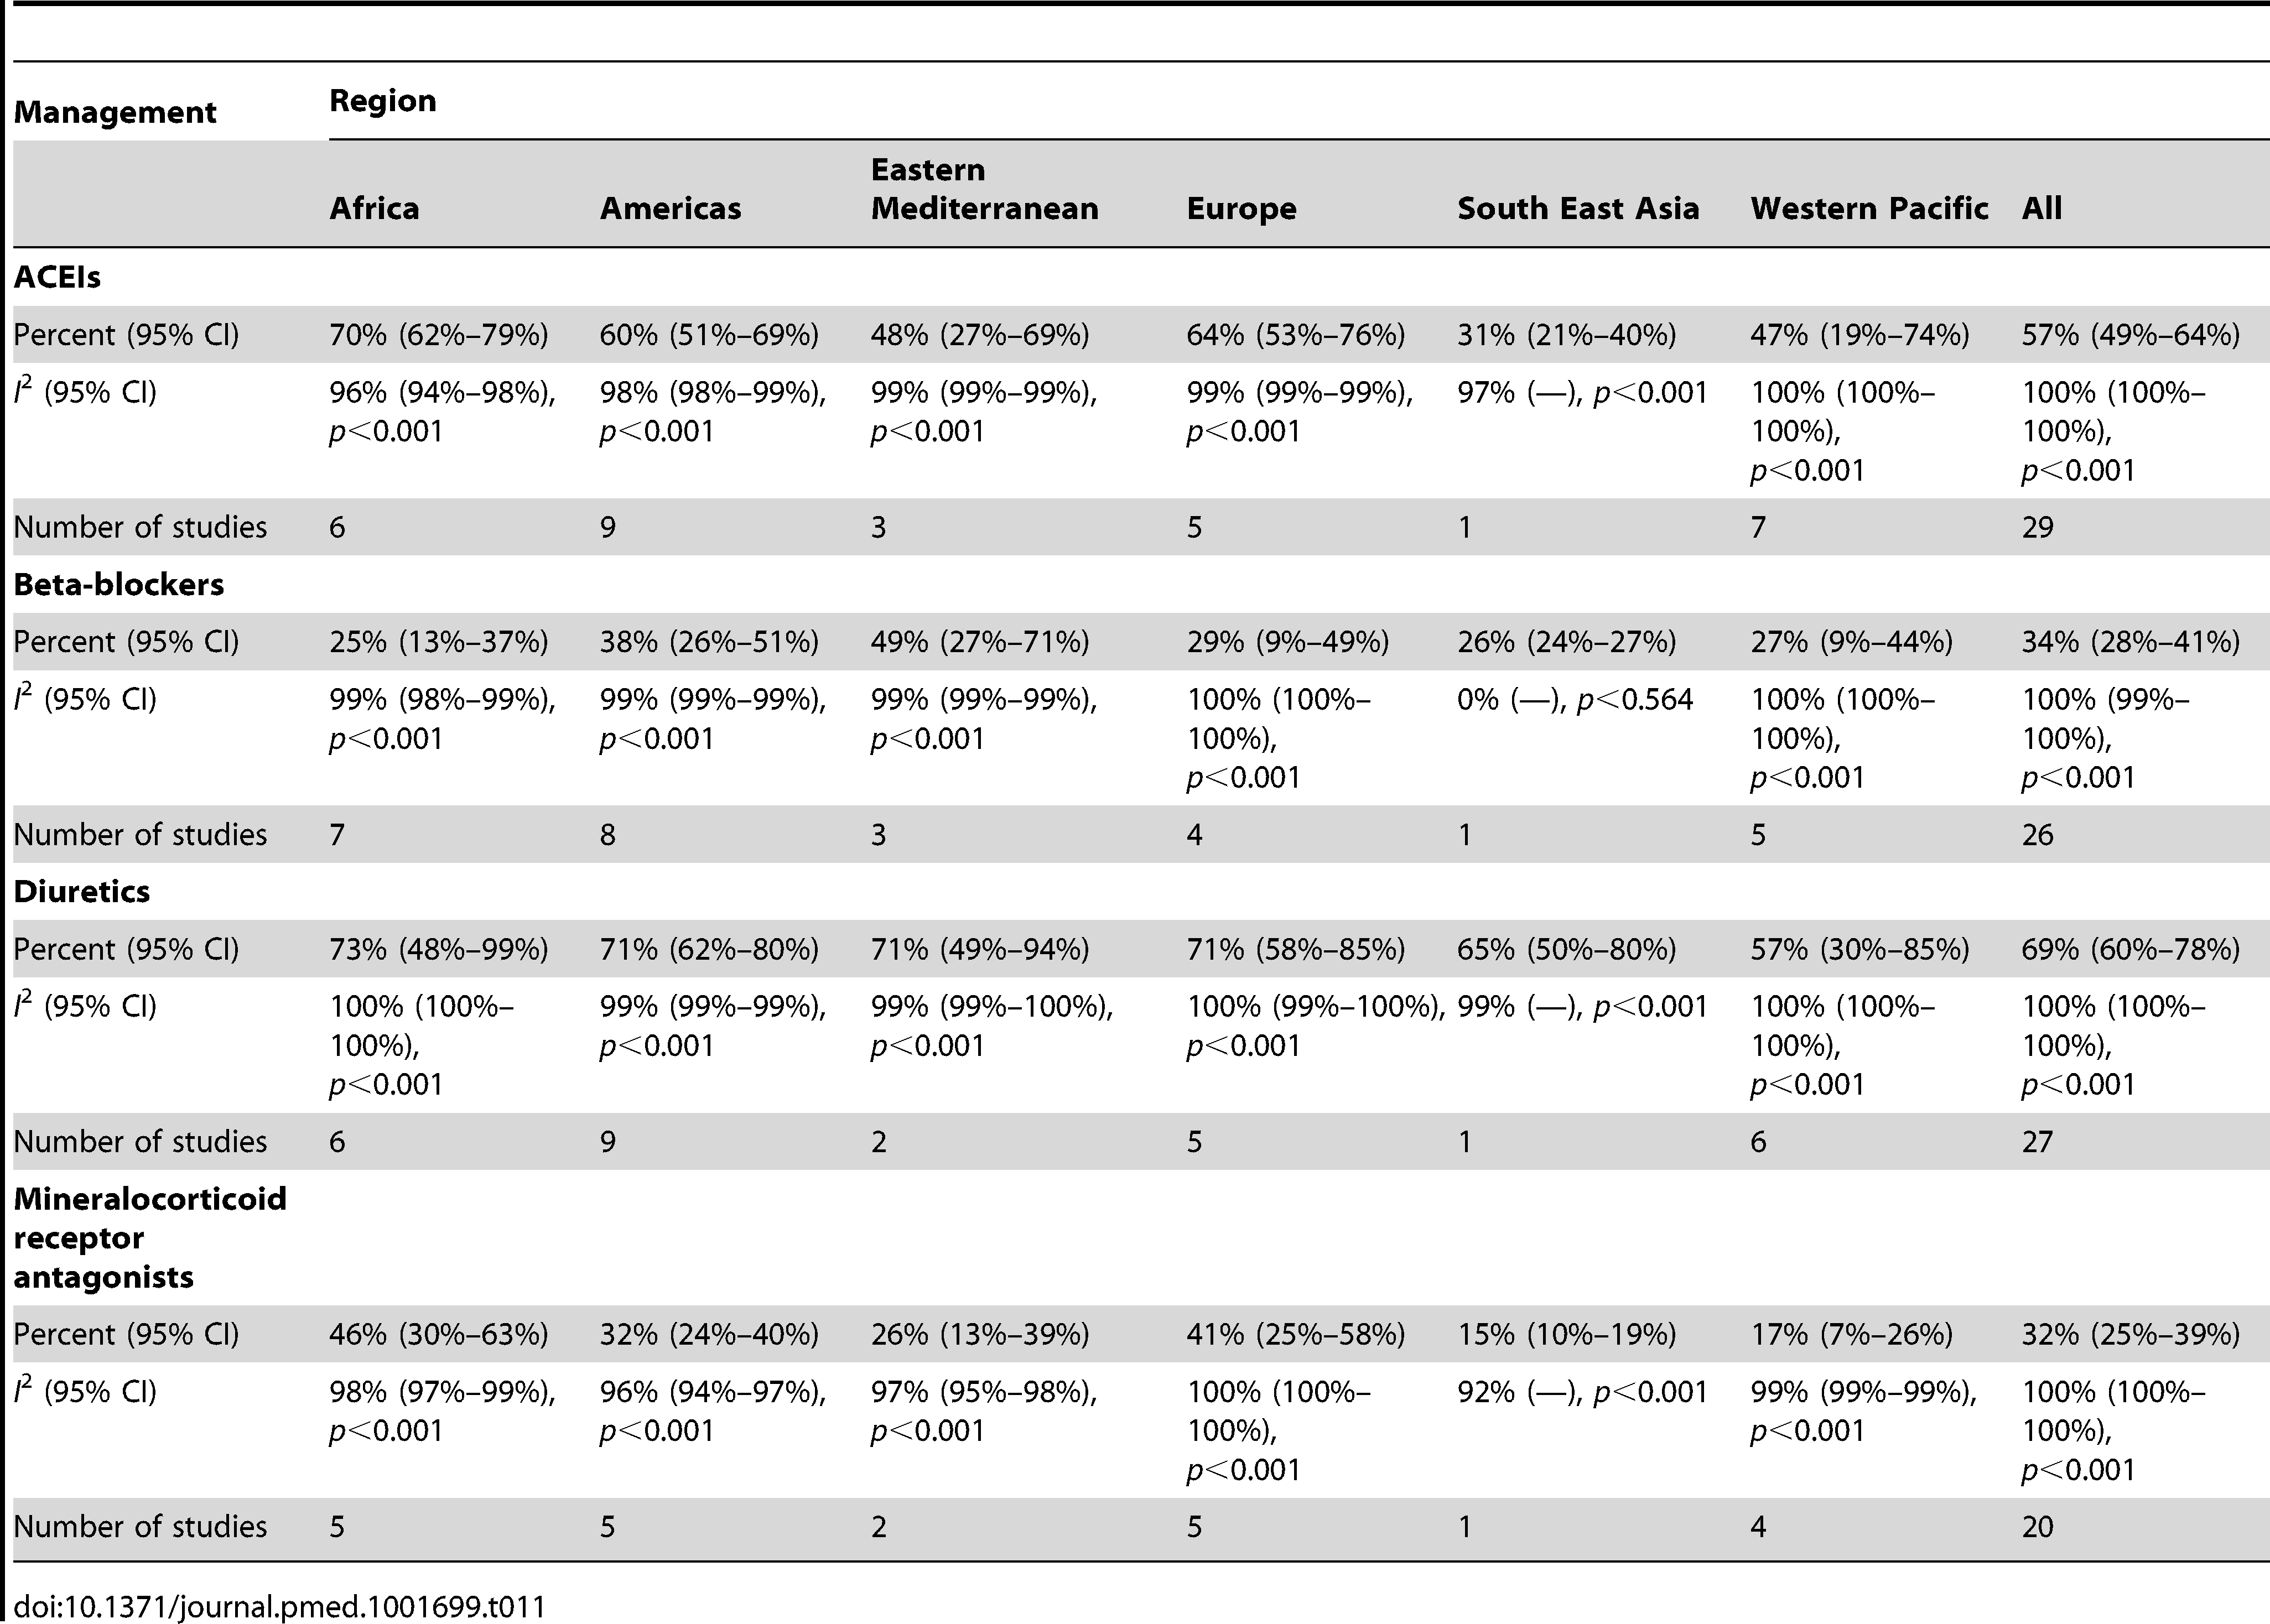 Reported management of heart failure, by region.